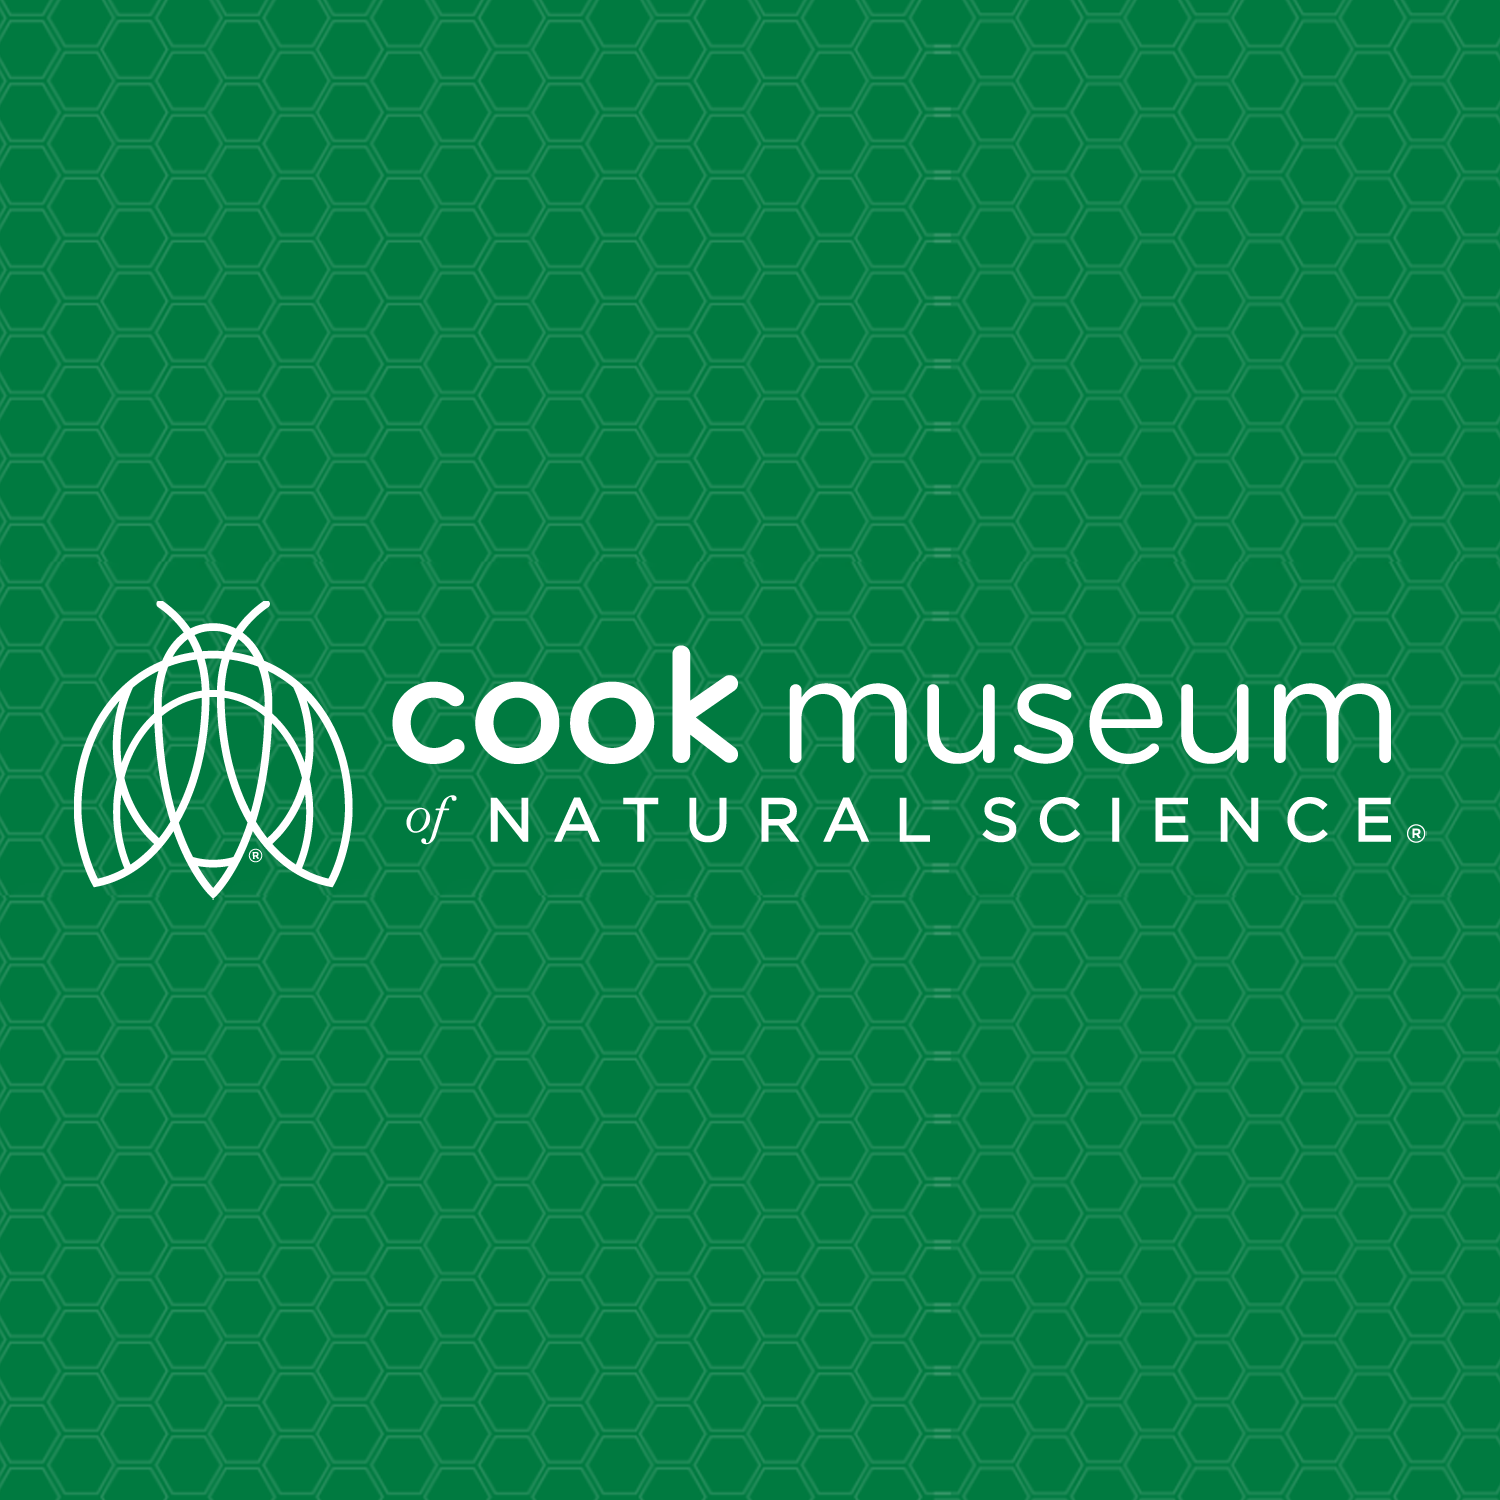 The Cook Museum